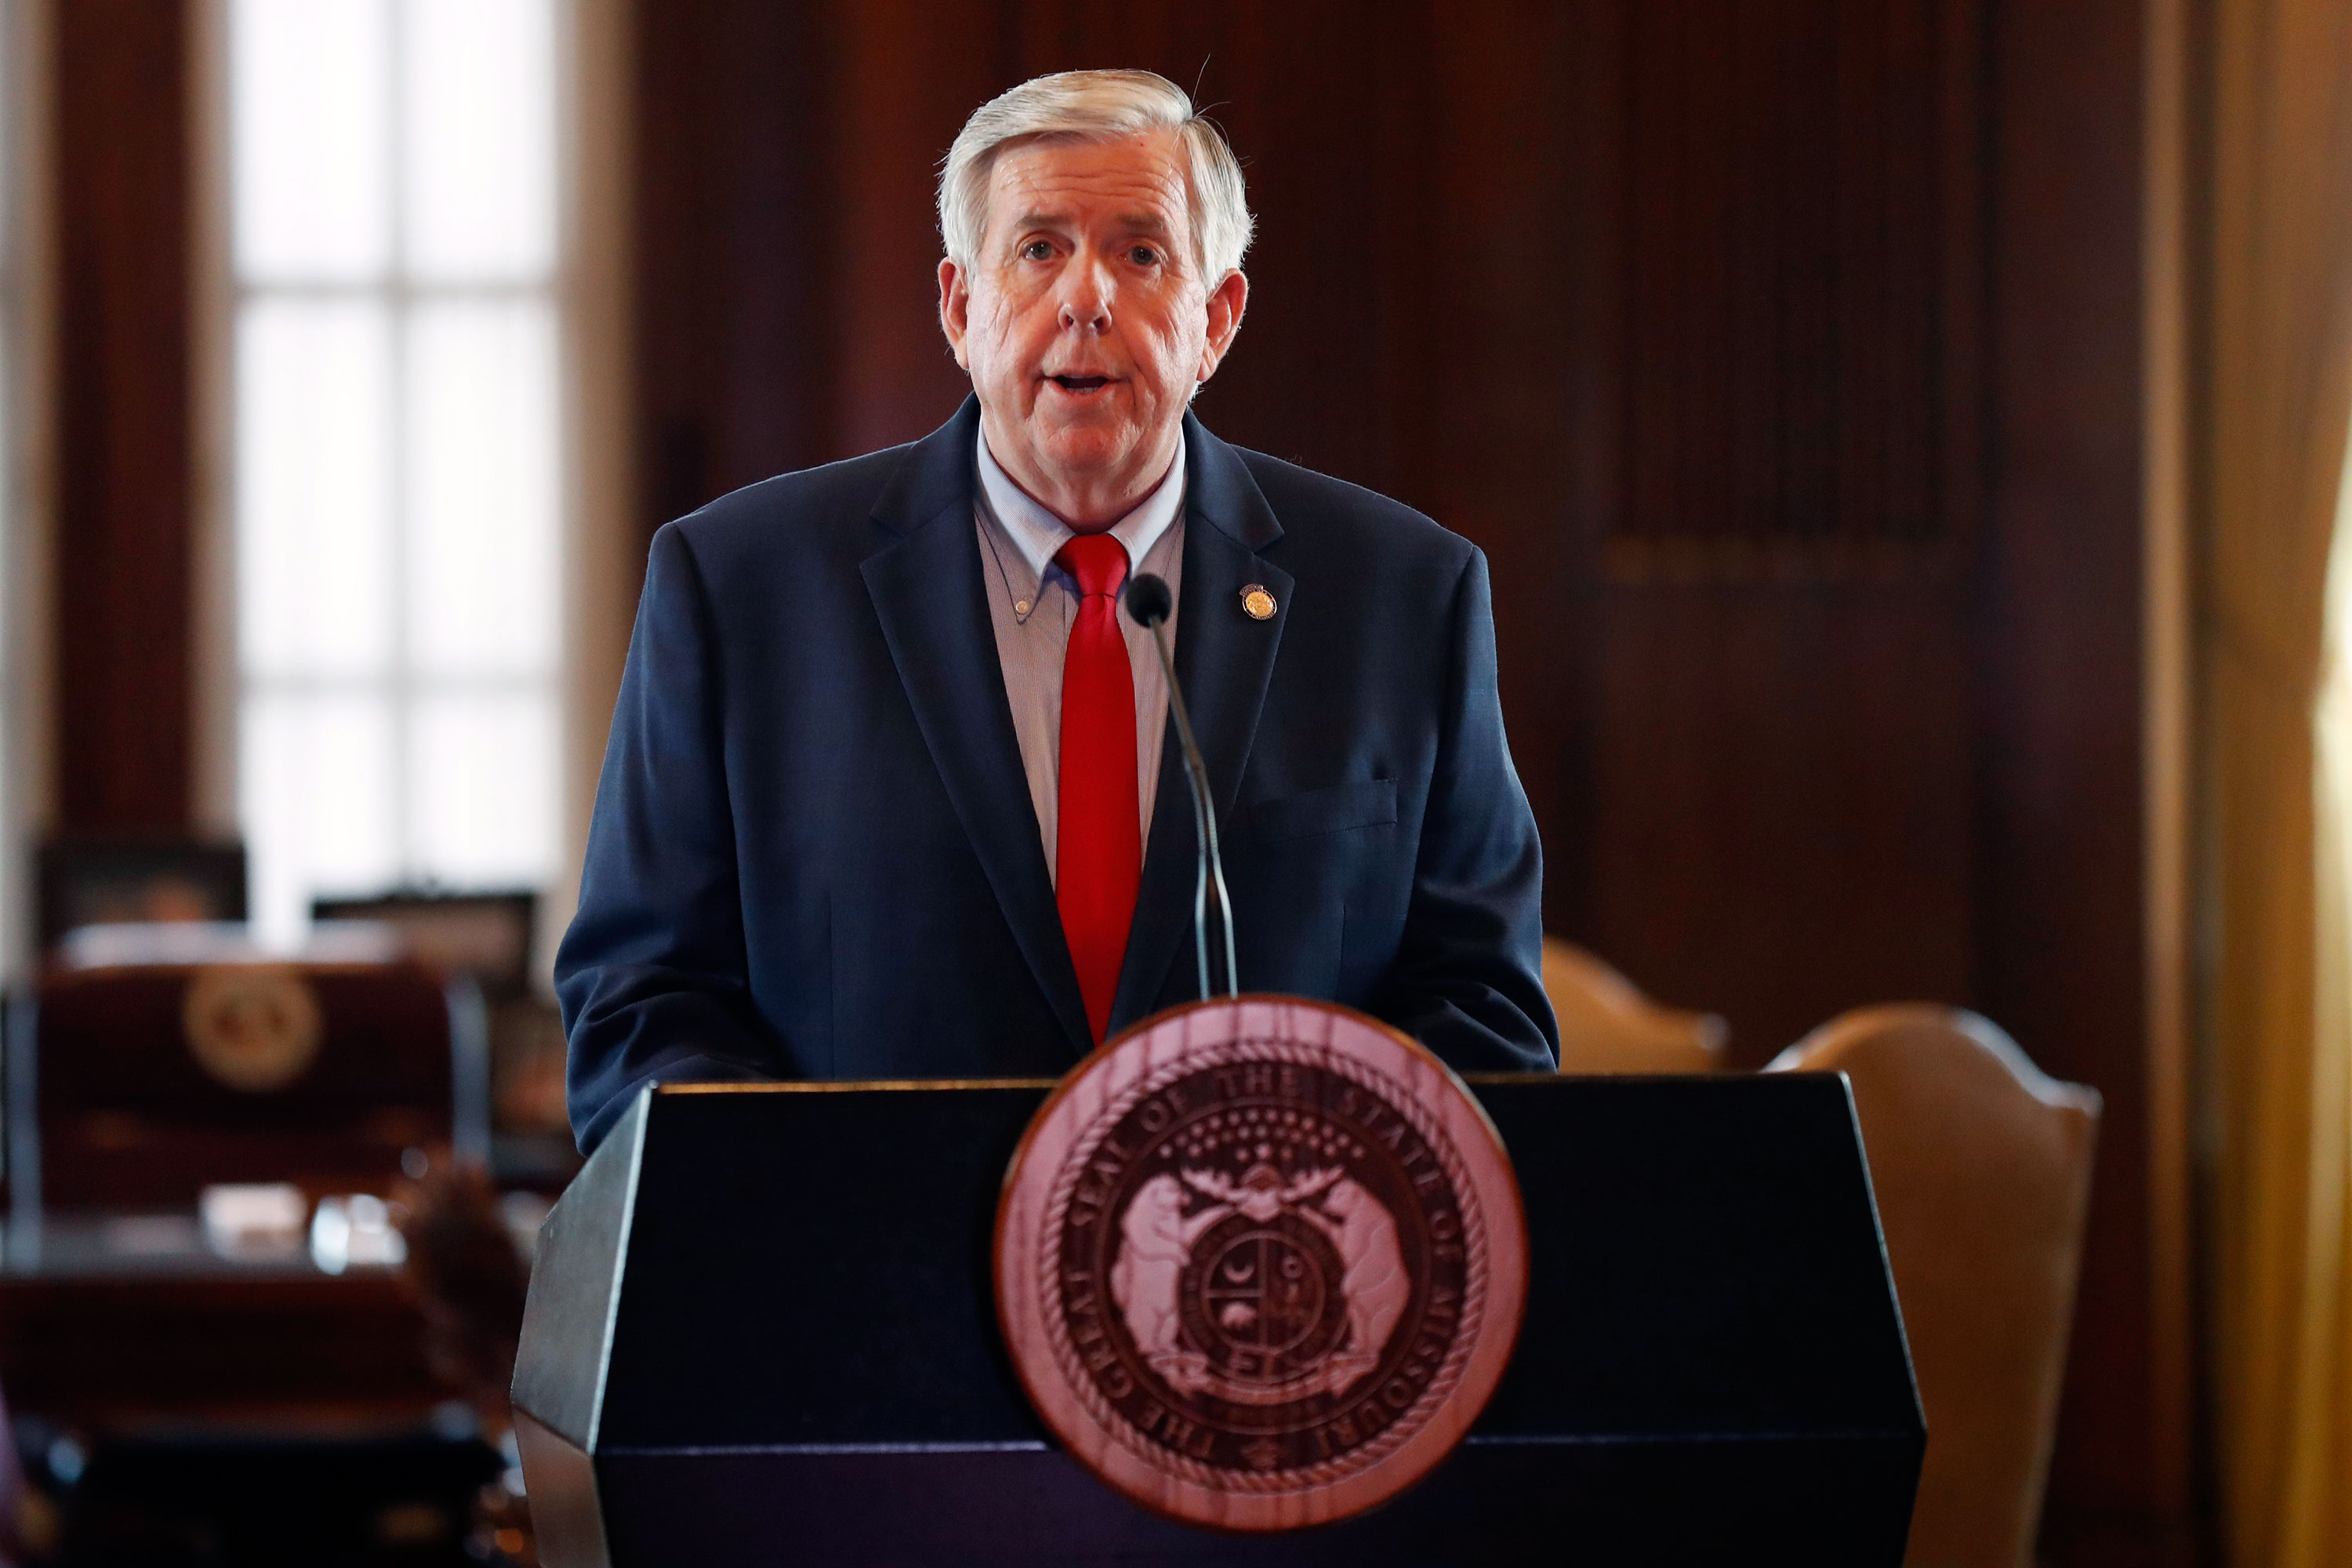 Gov. Mike Parson conducts his daily coronavirus briefing on April 27, in Jefferson City, Missouri.